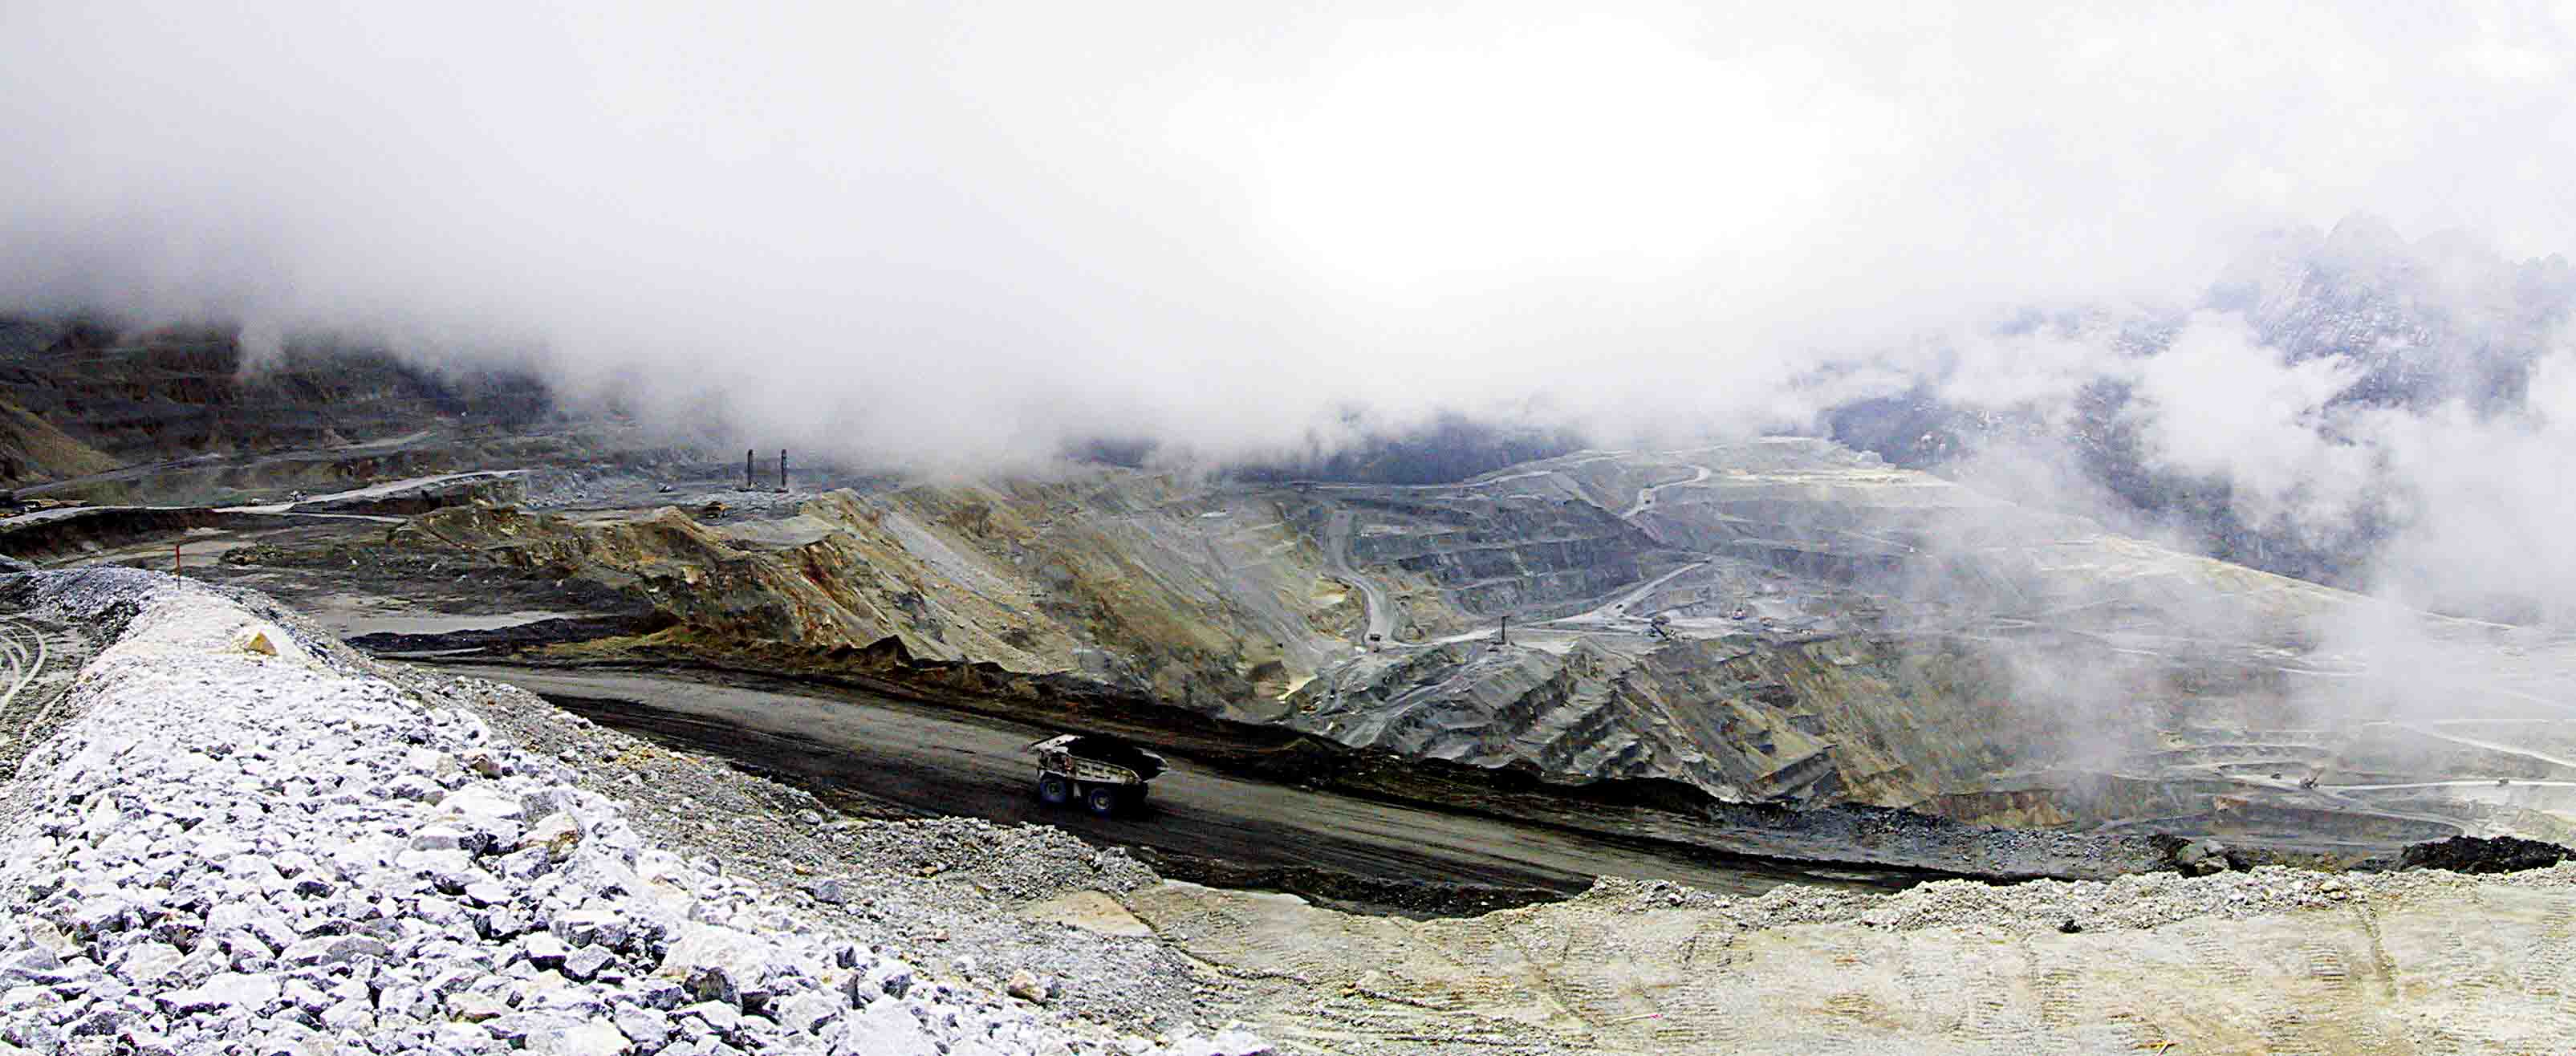 Misty opencut pit at Grasberg, Papua province, Indonesia. Photo by Michael Thirnbeck via Flickr